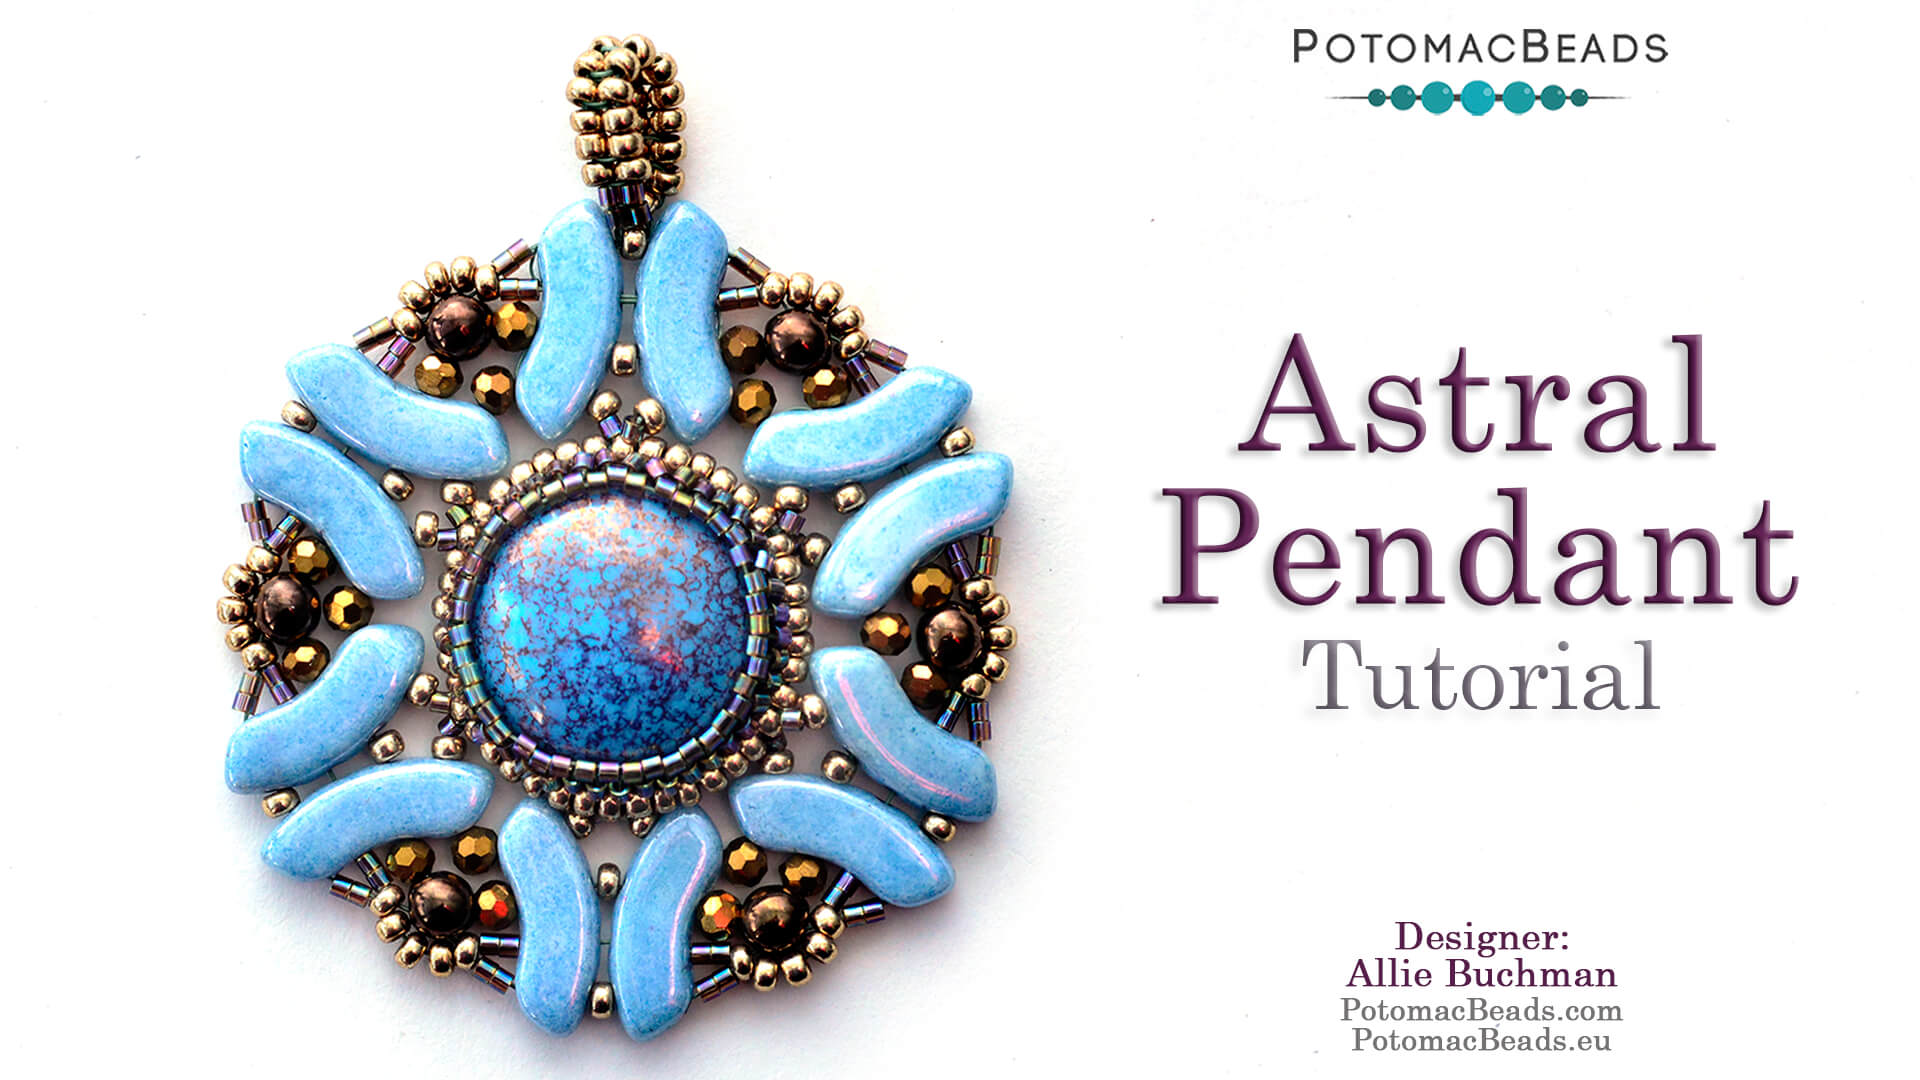 How to Bead / Videos Sorted by Beads / Potomac Crystal Videos / Astral Pendant Tutorial